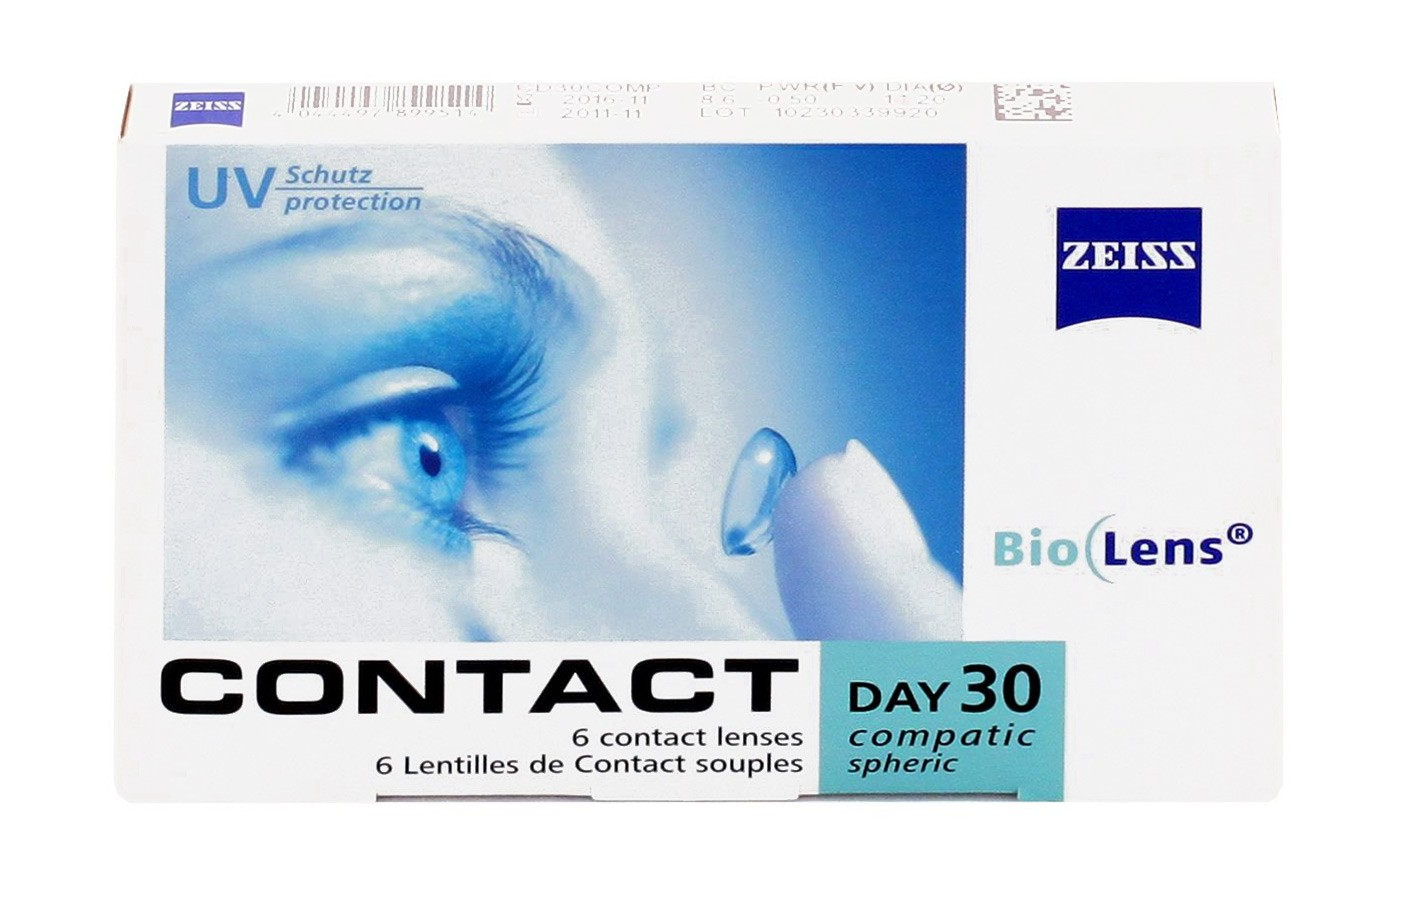 Zeiss contact day30 compatic